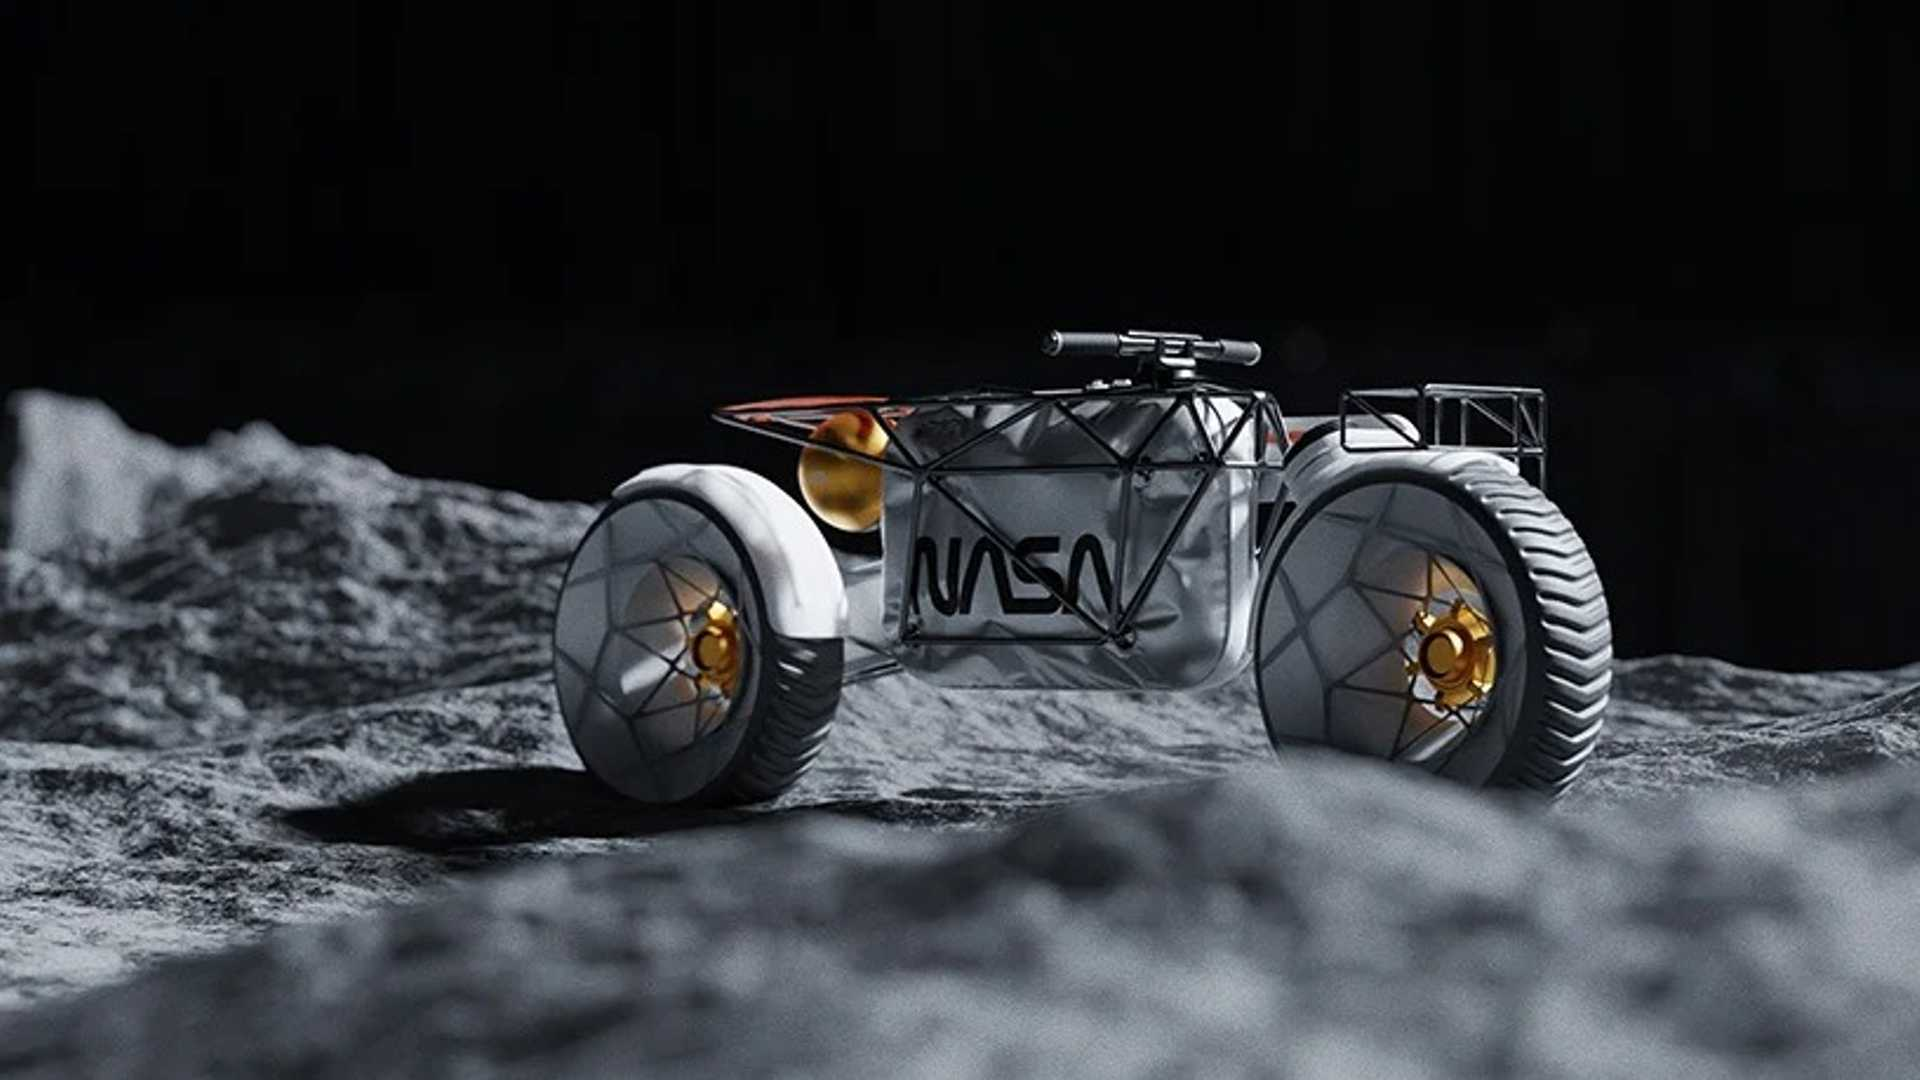 NASA motorcycle envisioned and it's quite brilliant